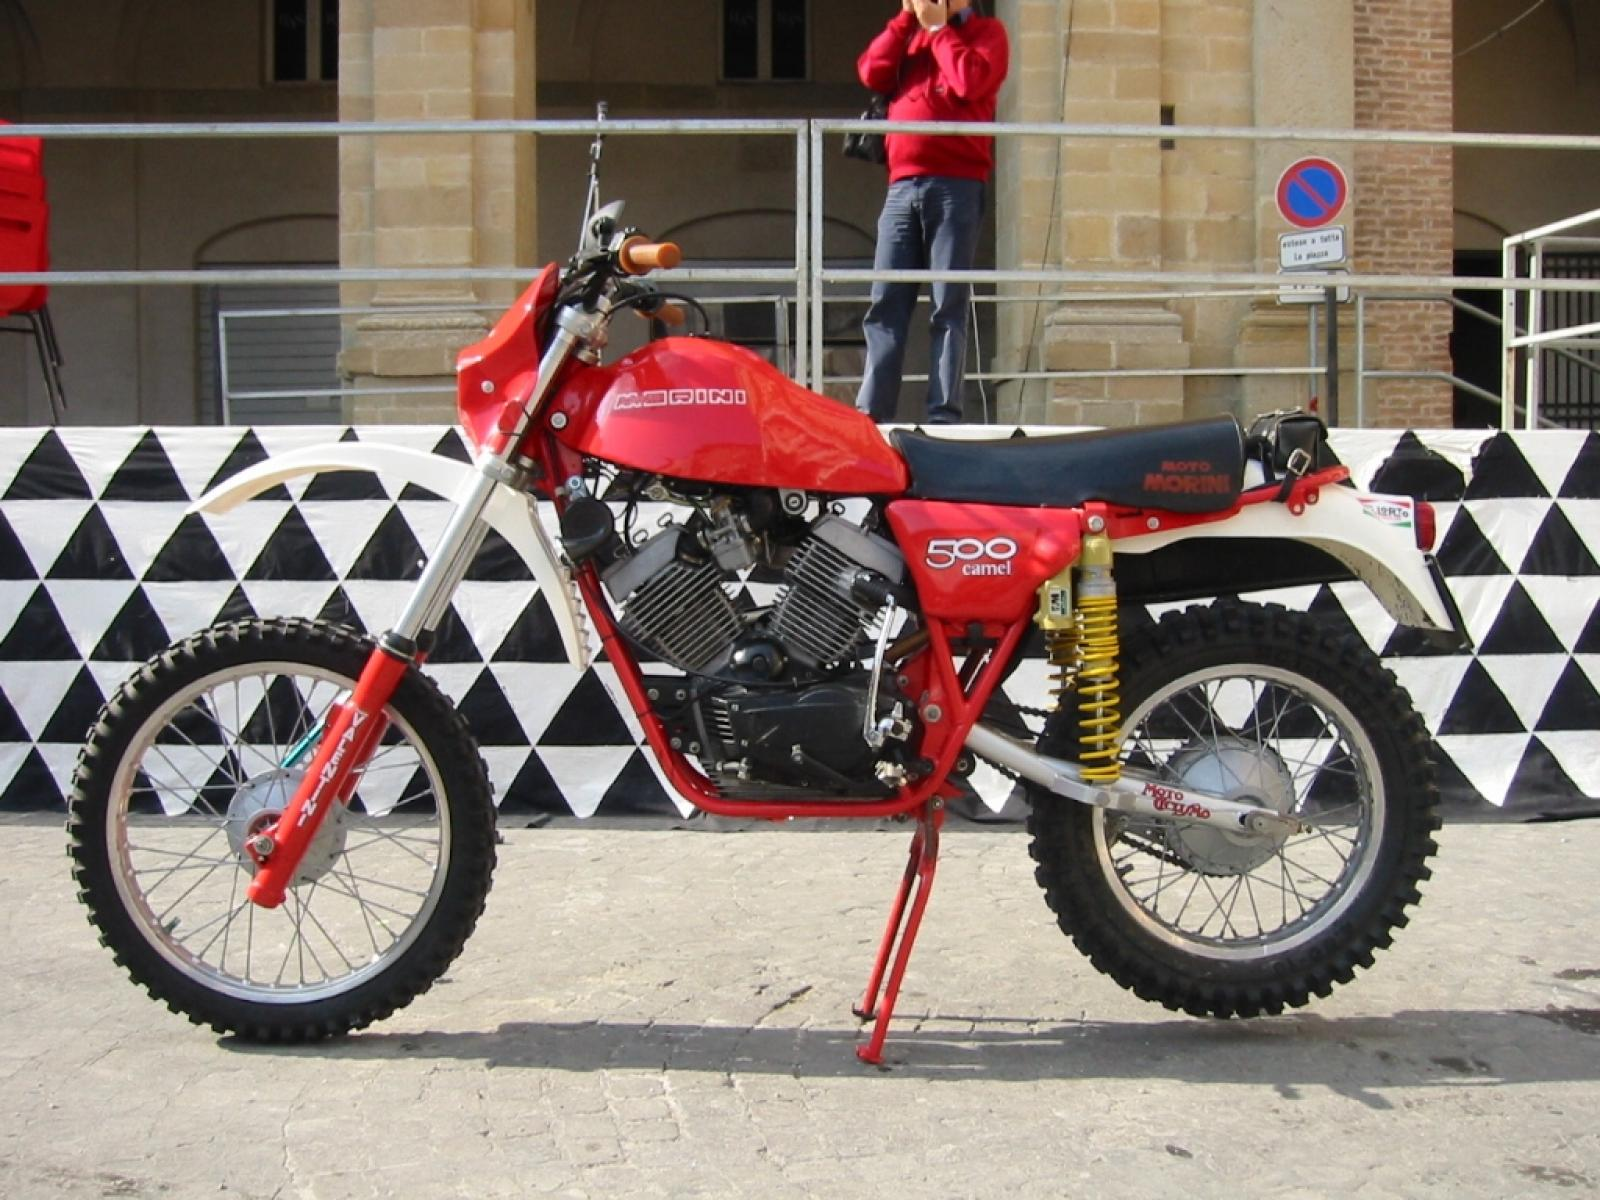 Maico MD 250 WK 1981 images #103509